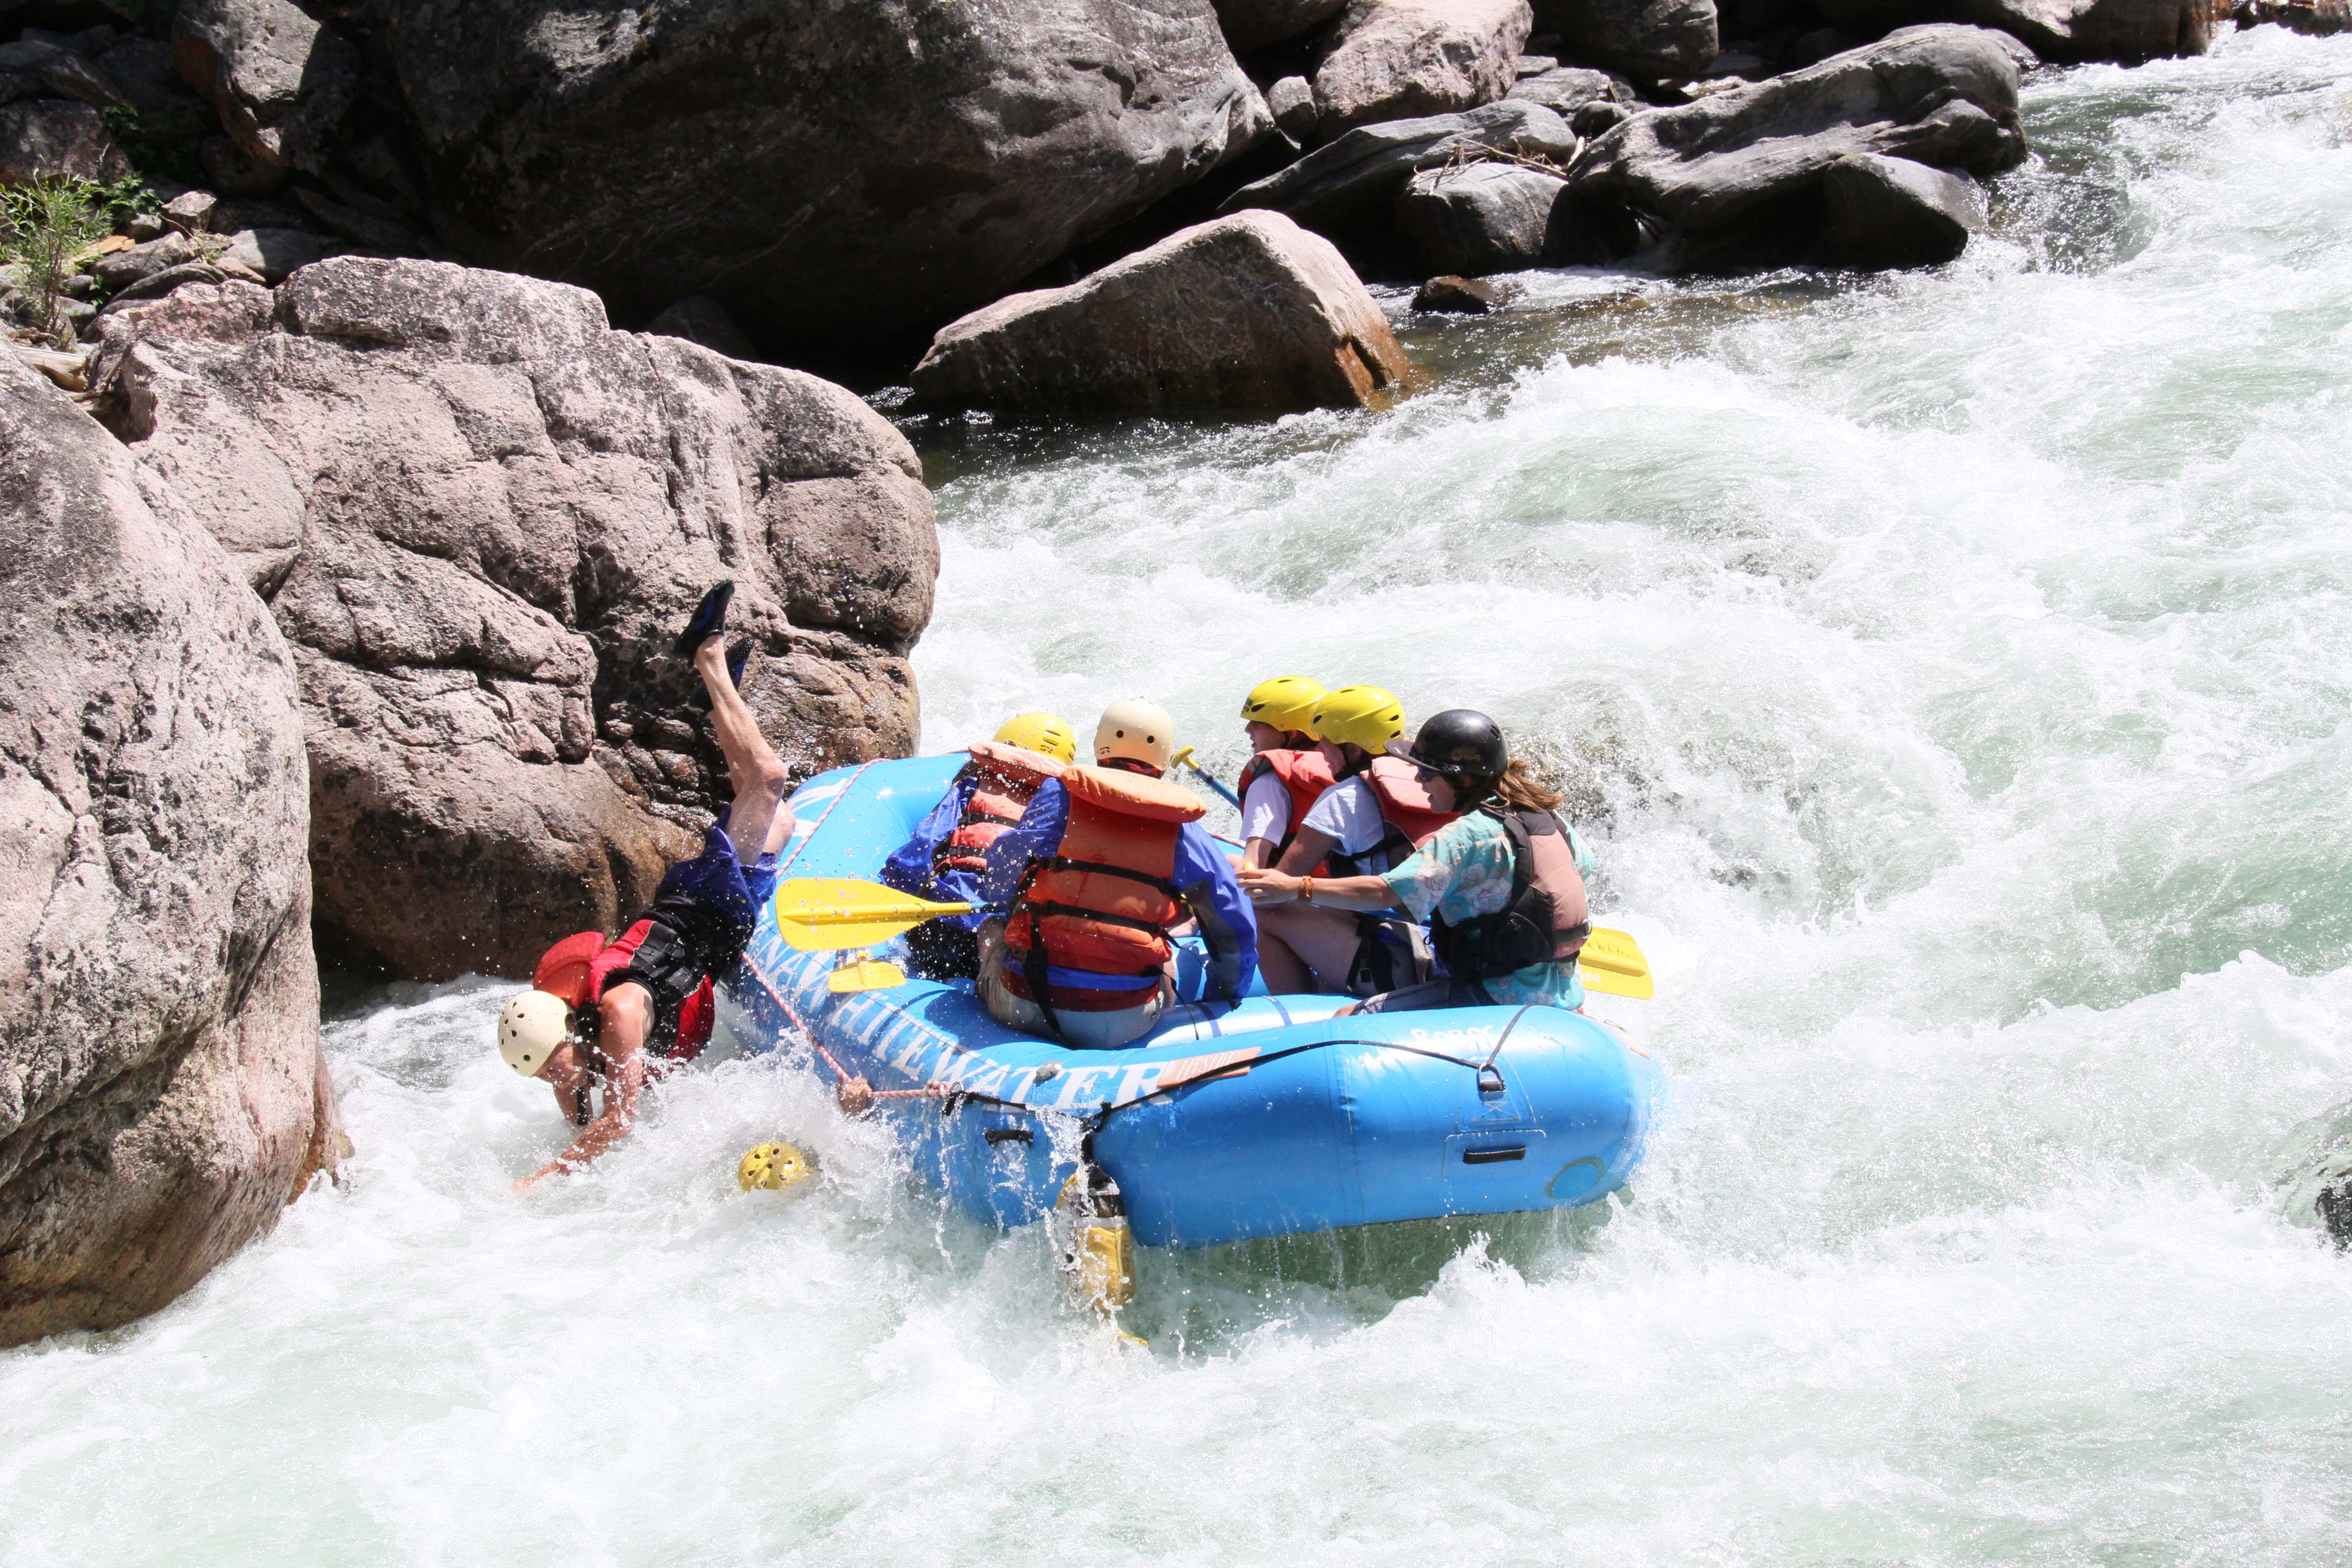 gallatin river house rock carnage